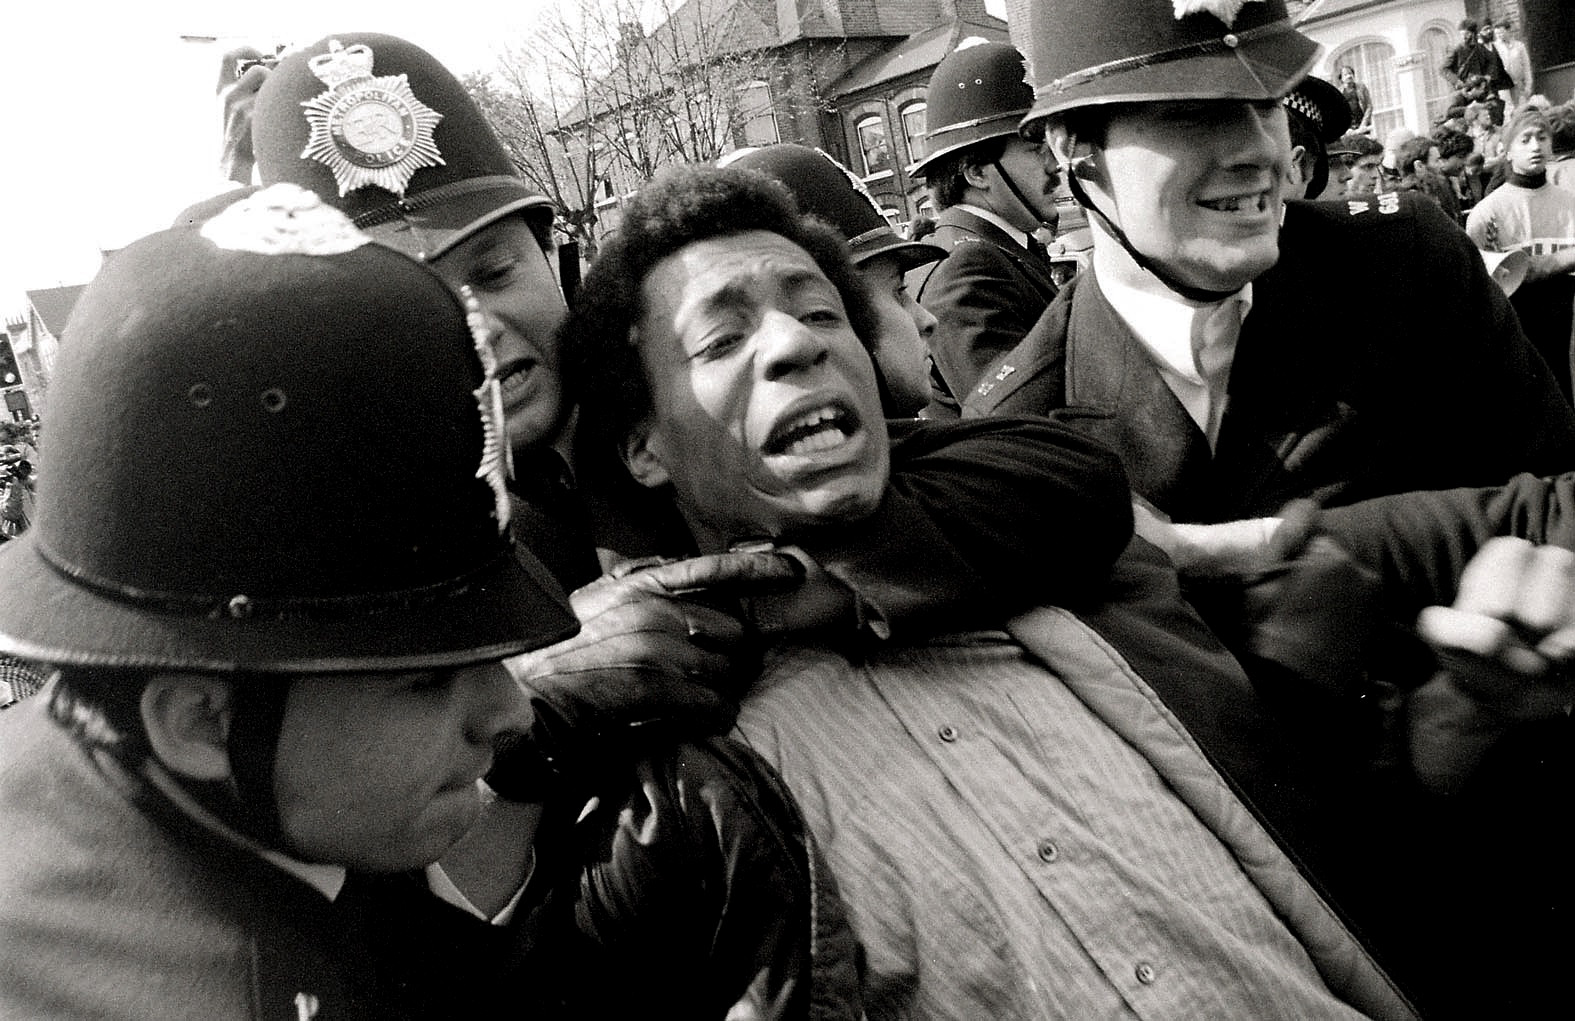 Police arrests at Newham 7 demo, London - 1985